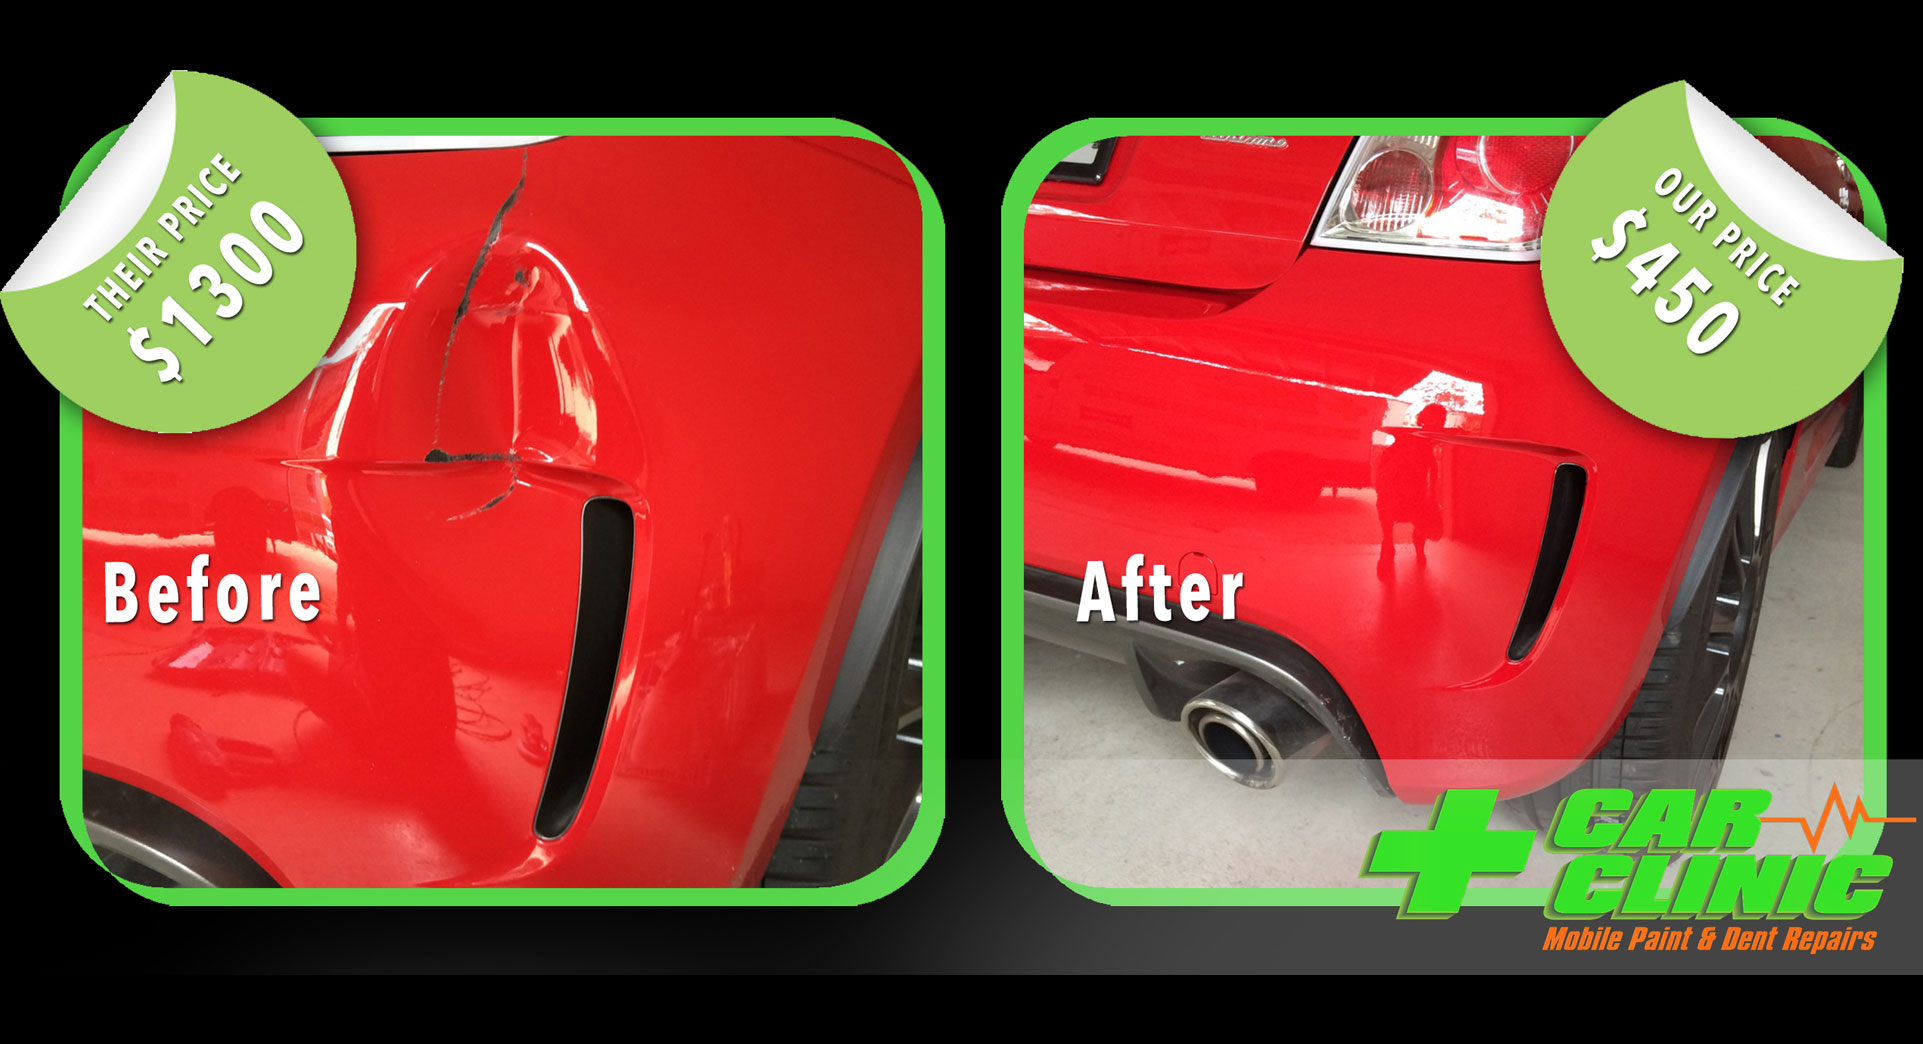 Mobile Paint & Dent Repairs - Brisbane - Before After Image 09